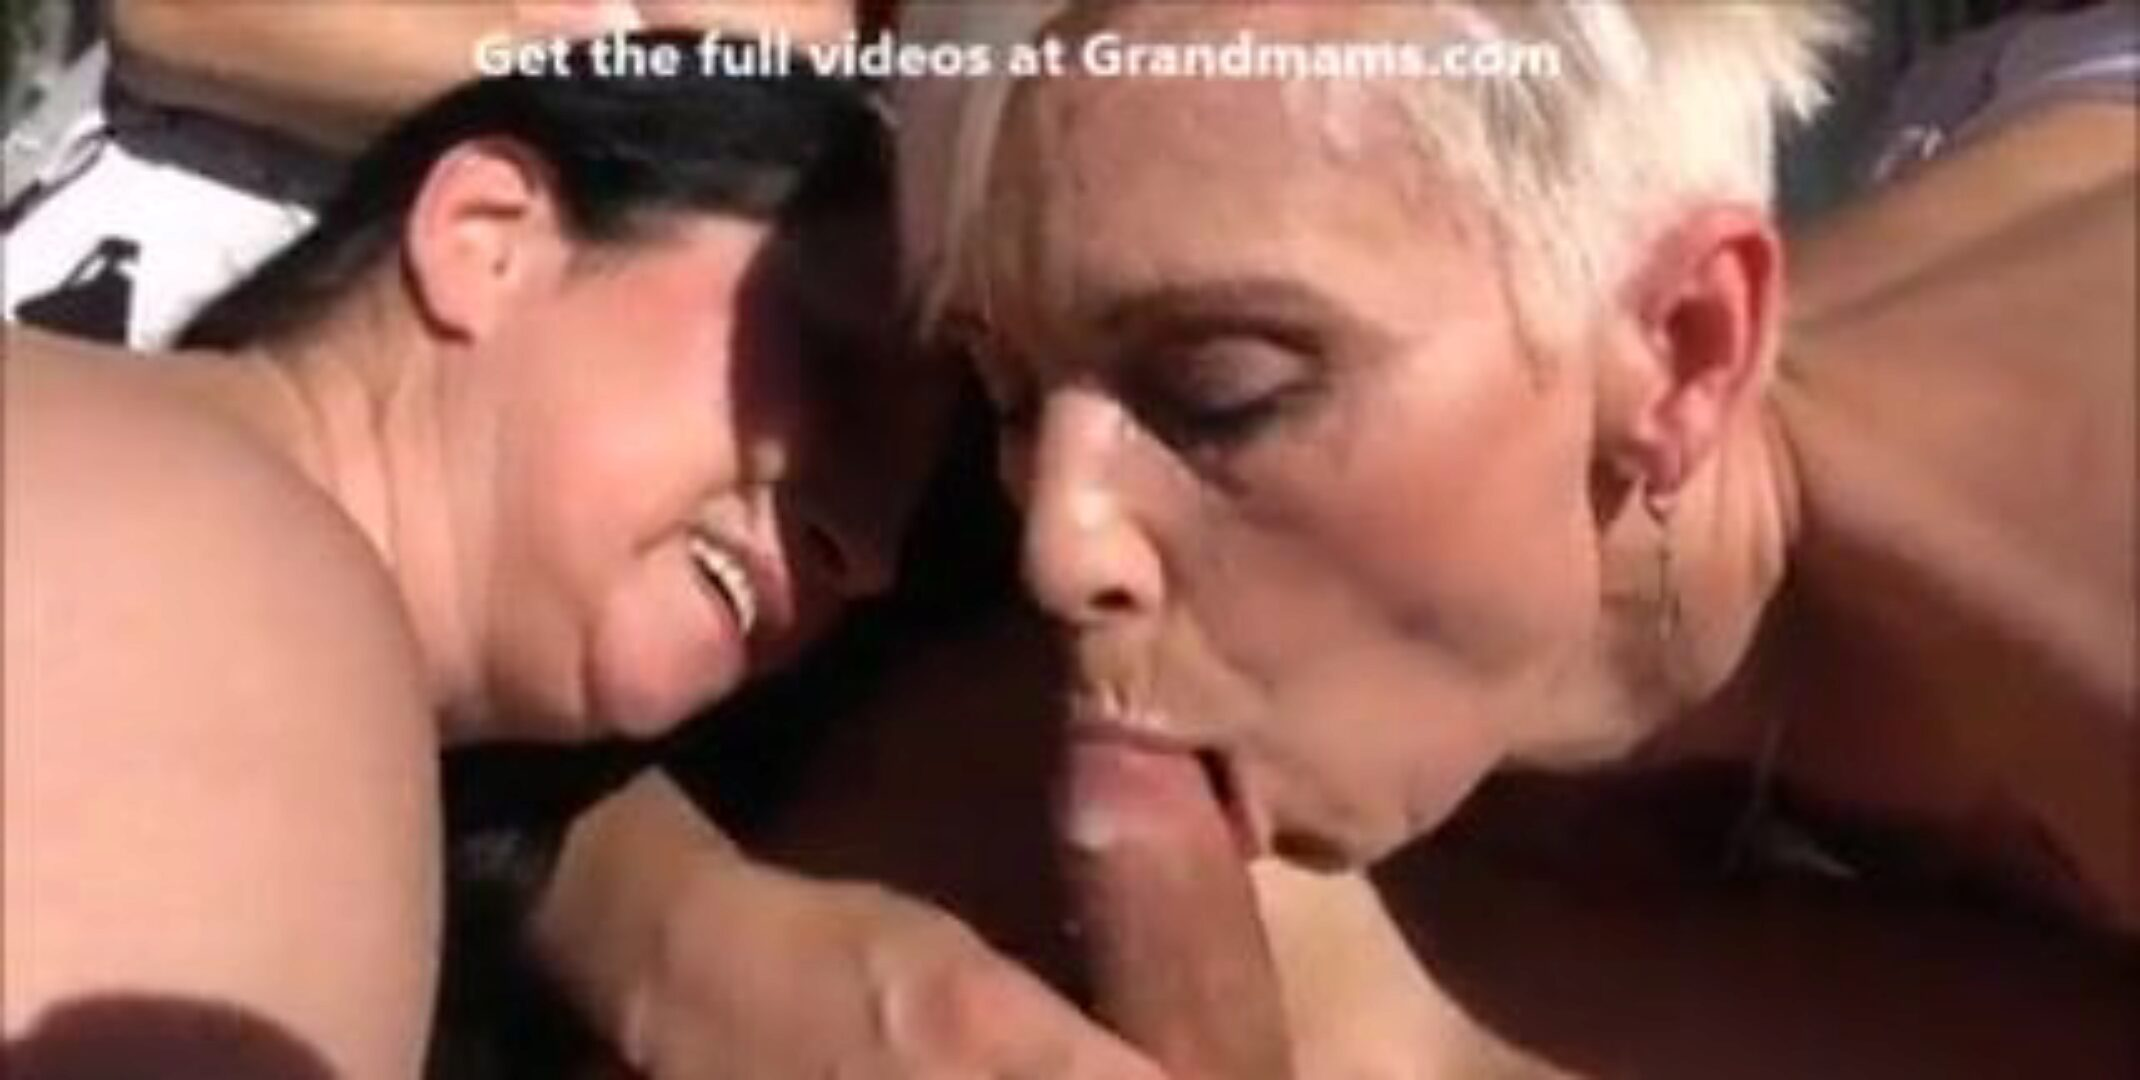 Grandmas Love Cum: Cum Compilation Porn Video ee - xHamster Watch Grandmas Love Cum tube hook-up clip for free on xHamster, with the sexiest collection of Cum Compilation Young Cock & Granny Sex porn movie sequences